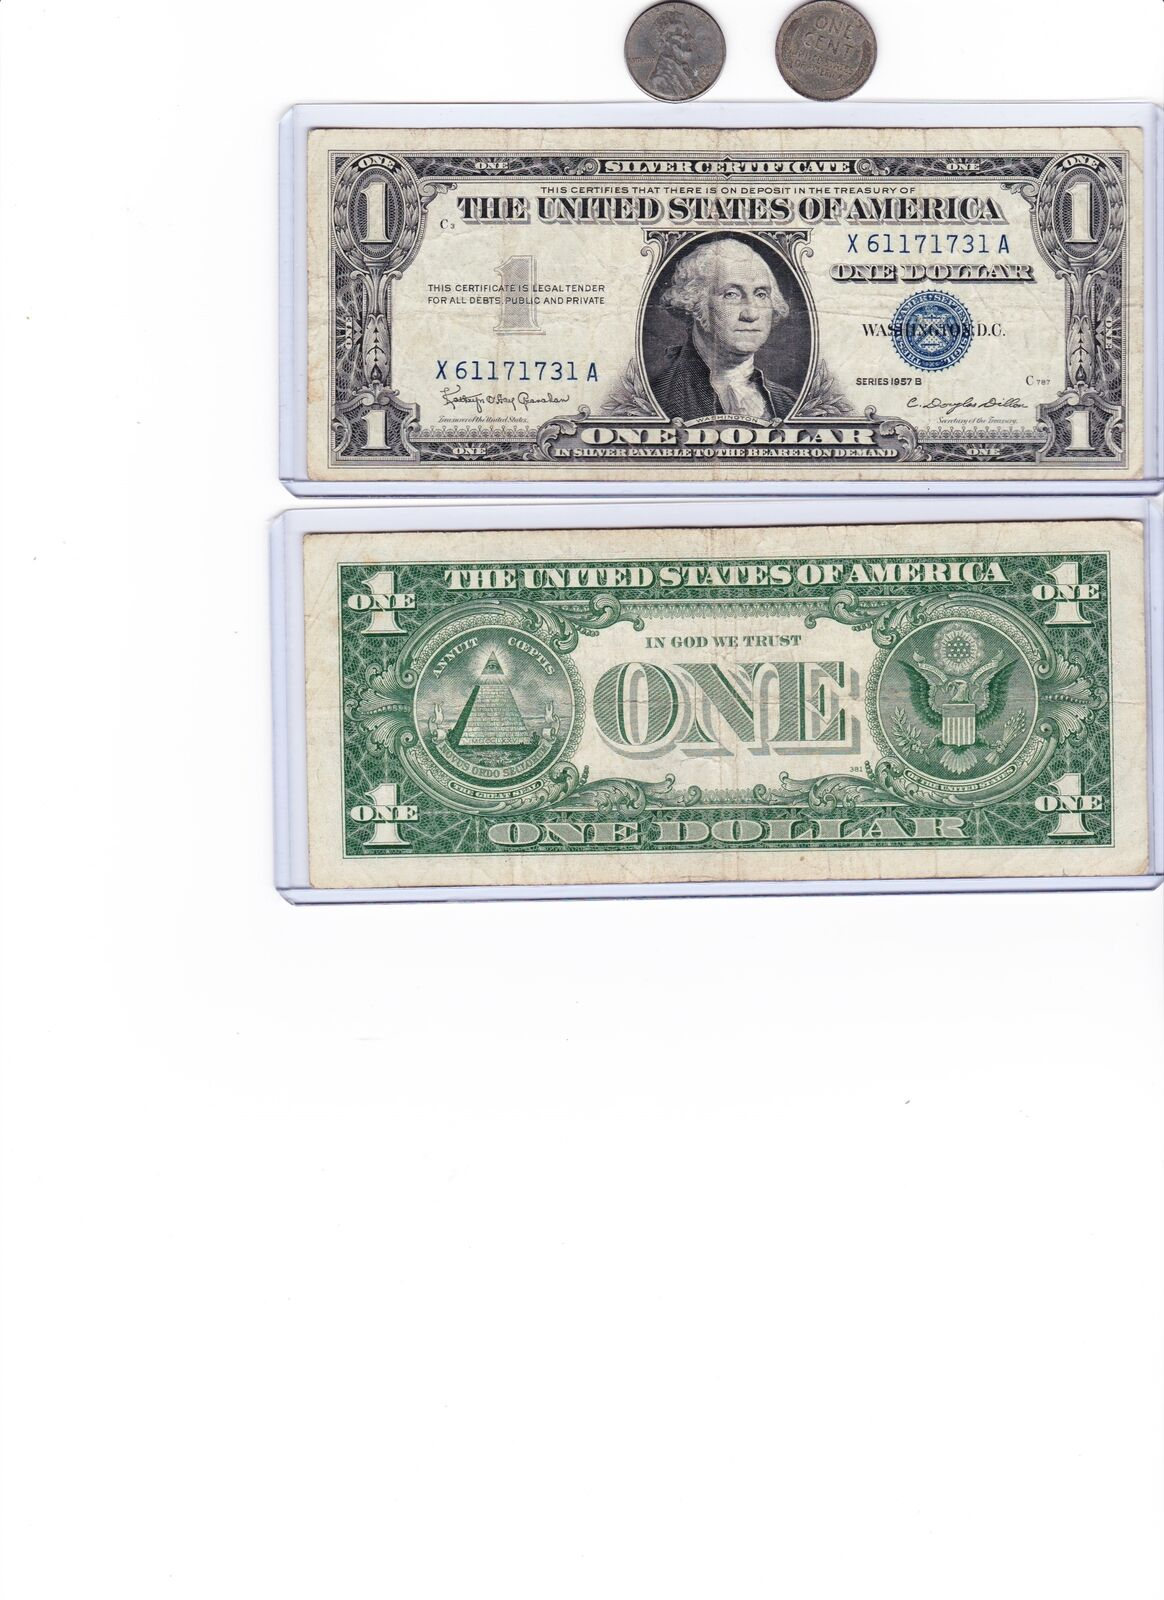 1943 Steel cent/penny &1935 or 1957 $1 Silver Certificate Blue Seal Note, 1 each